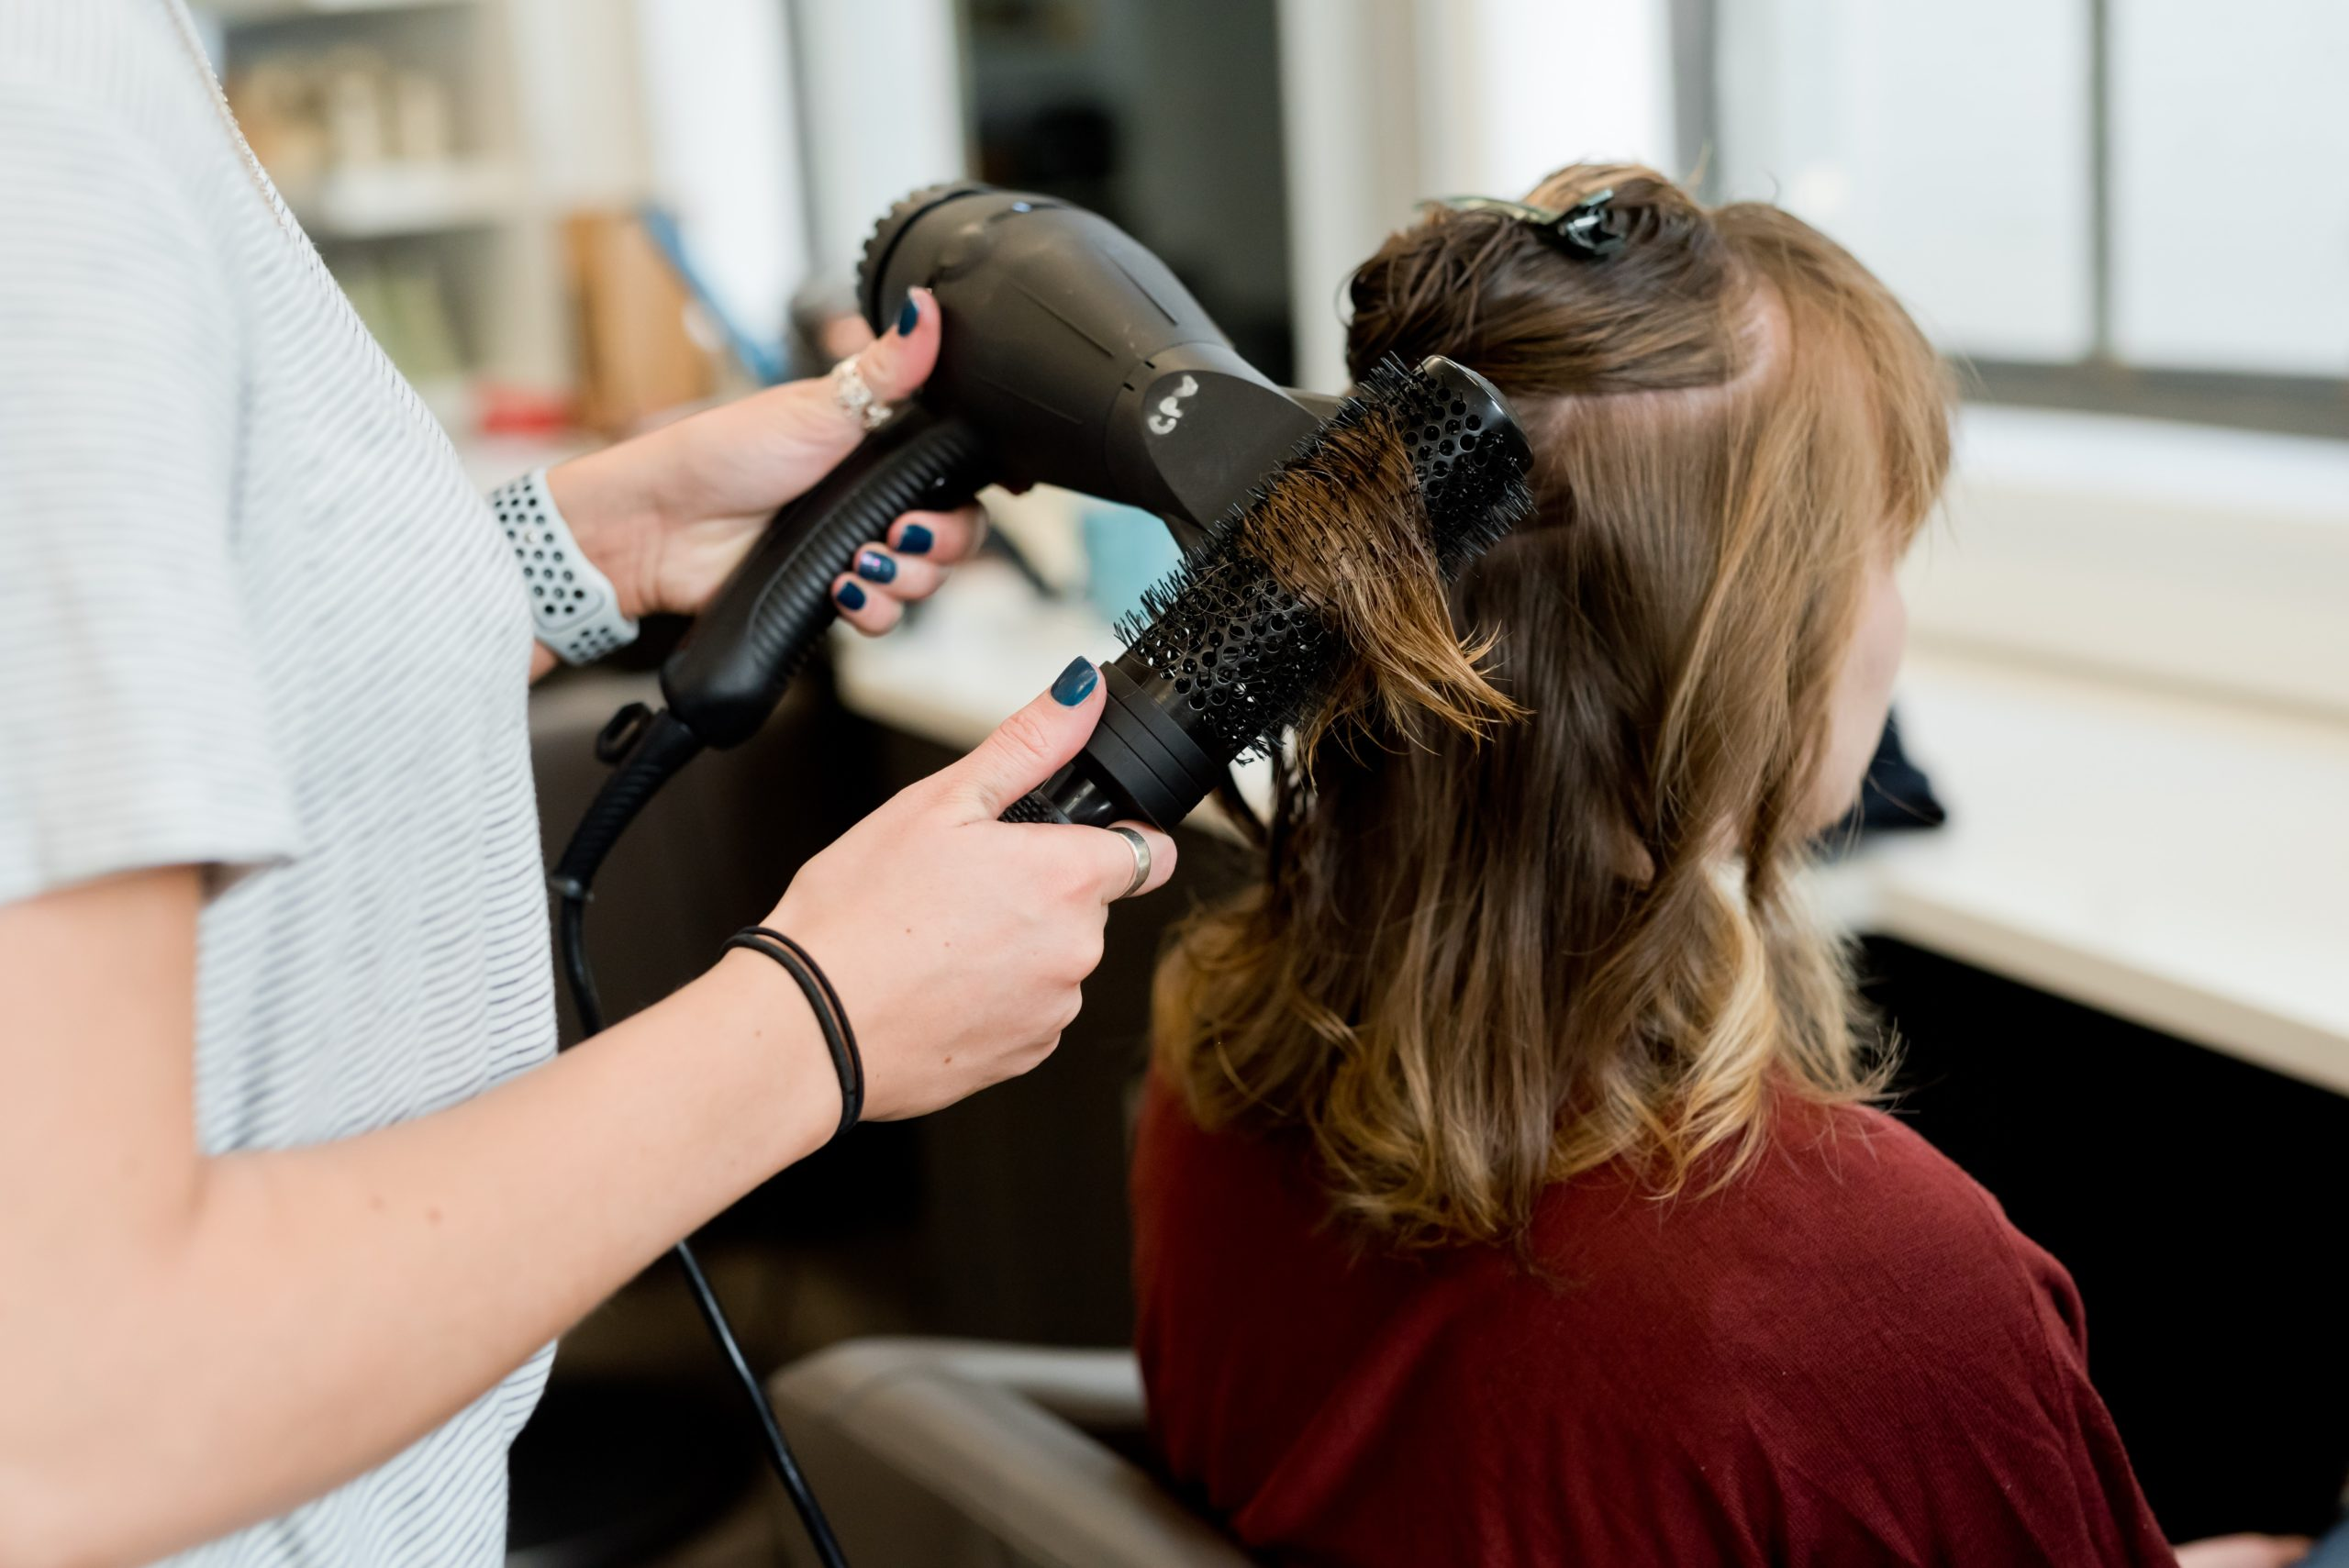 woman in red long sleeve shirt holding hair blower